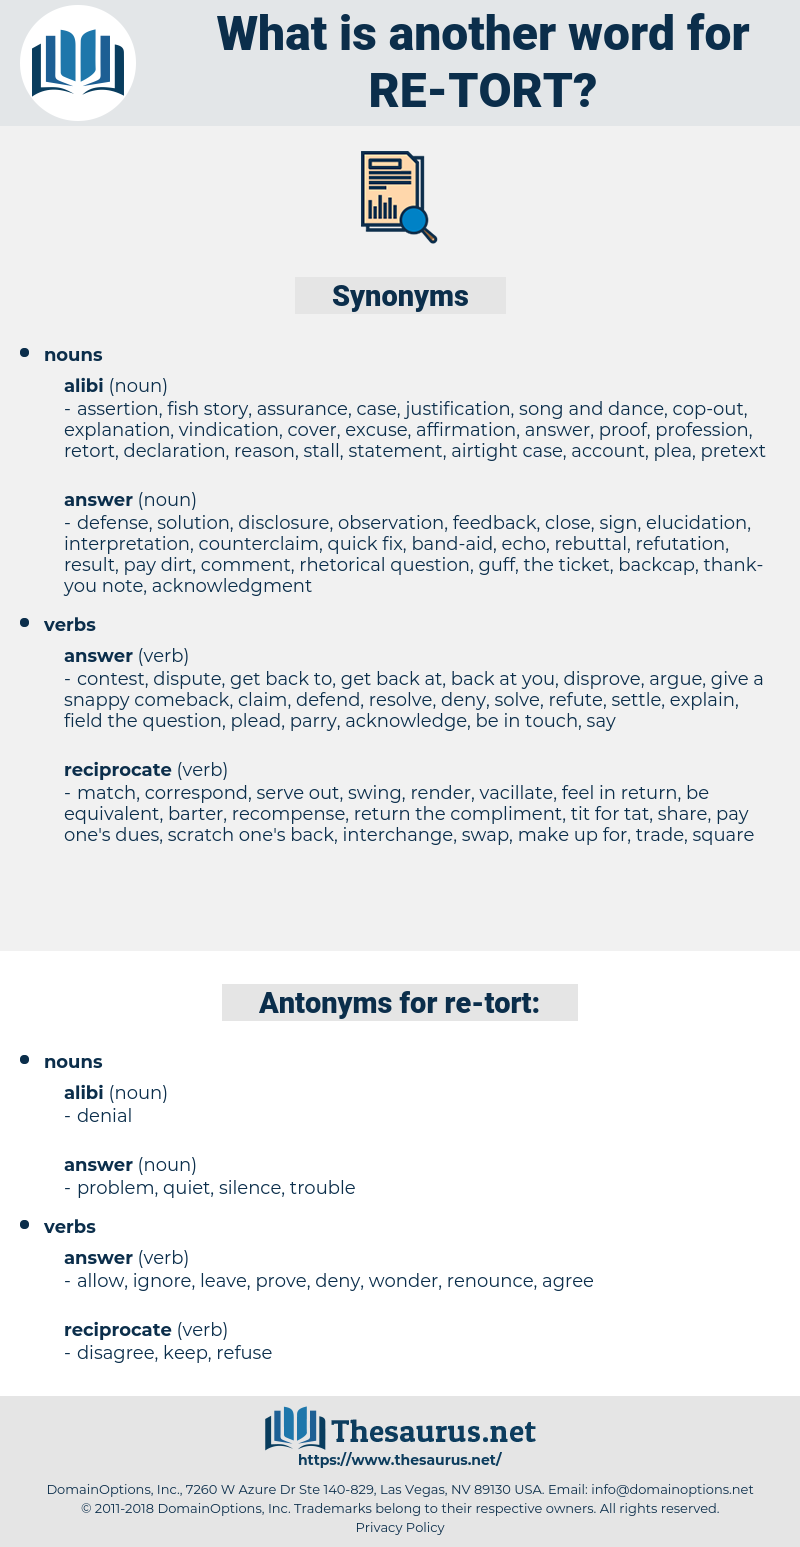 re-tort, synonym re-tort, another word for re-tort, words like re-tort, thesaurus re-tort